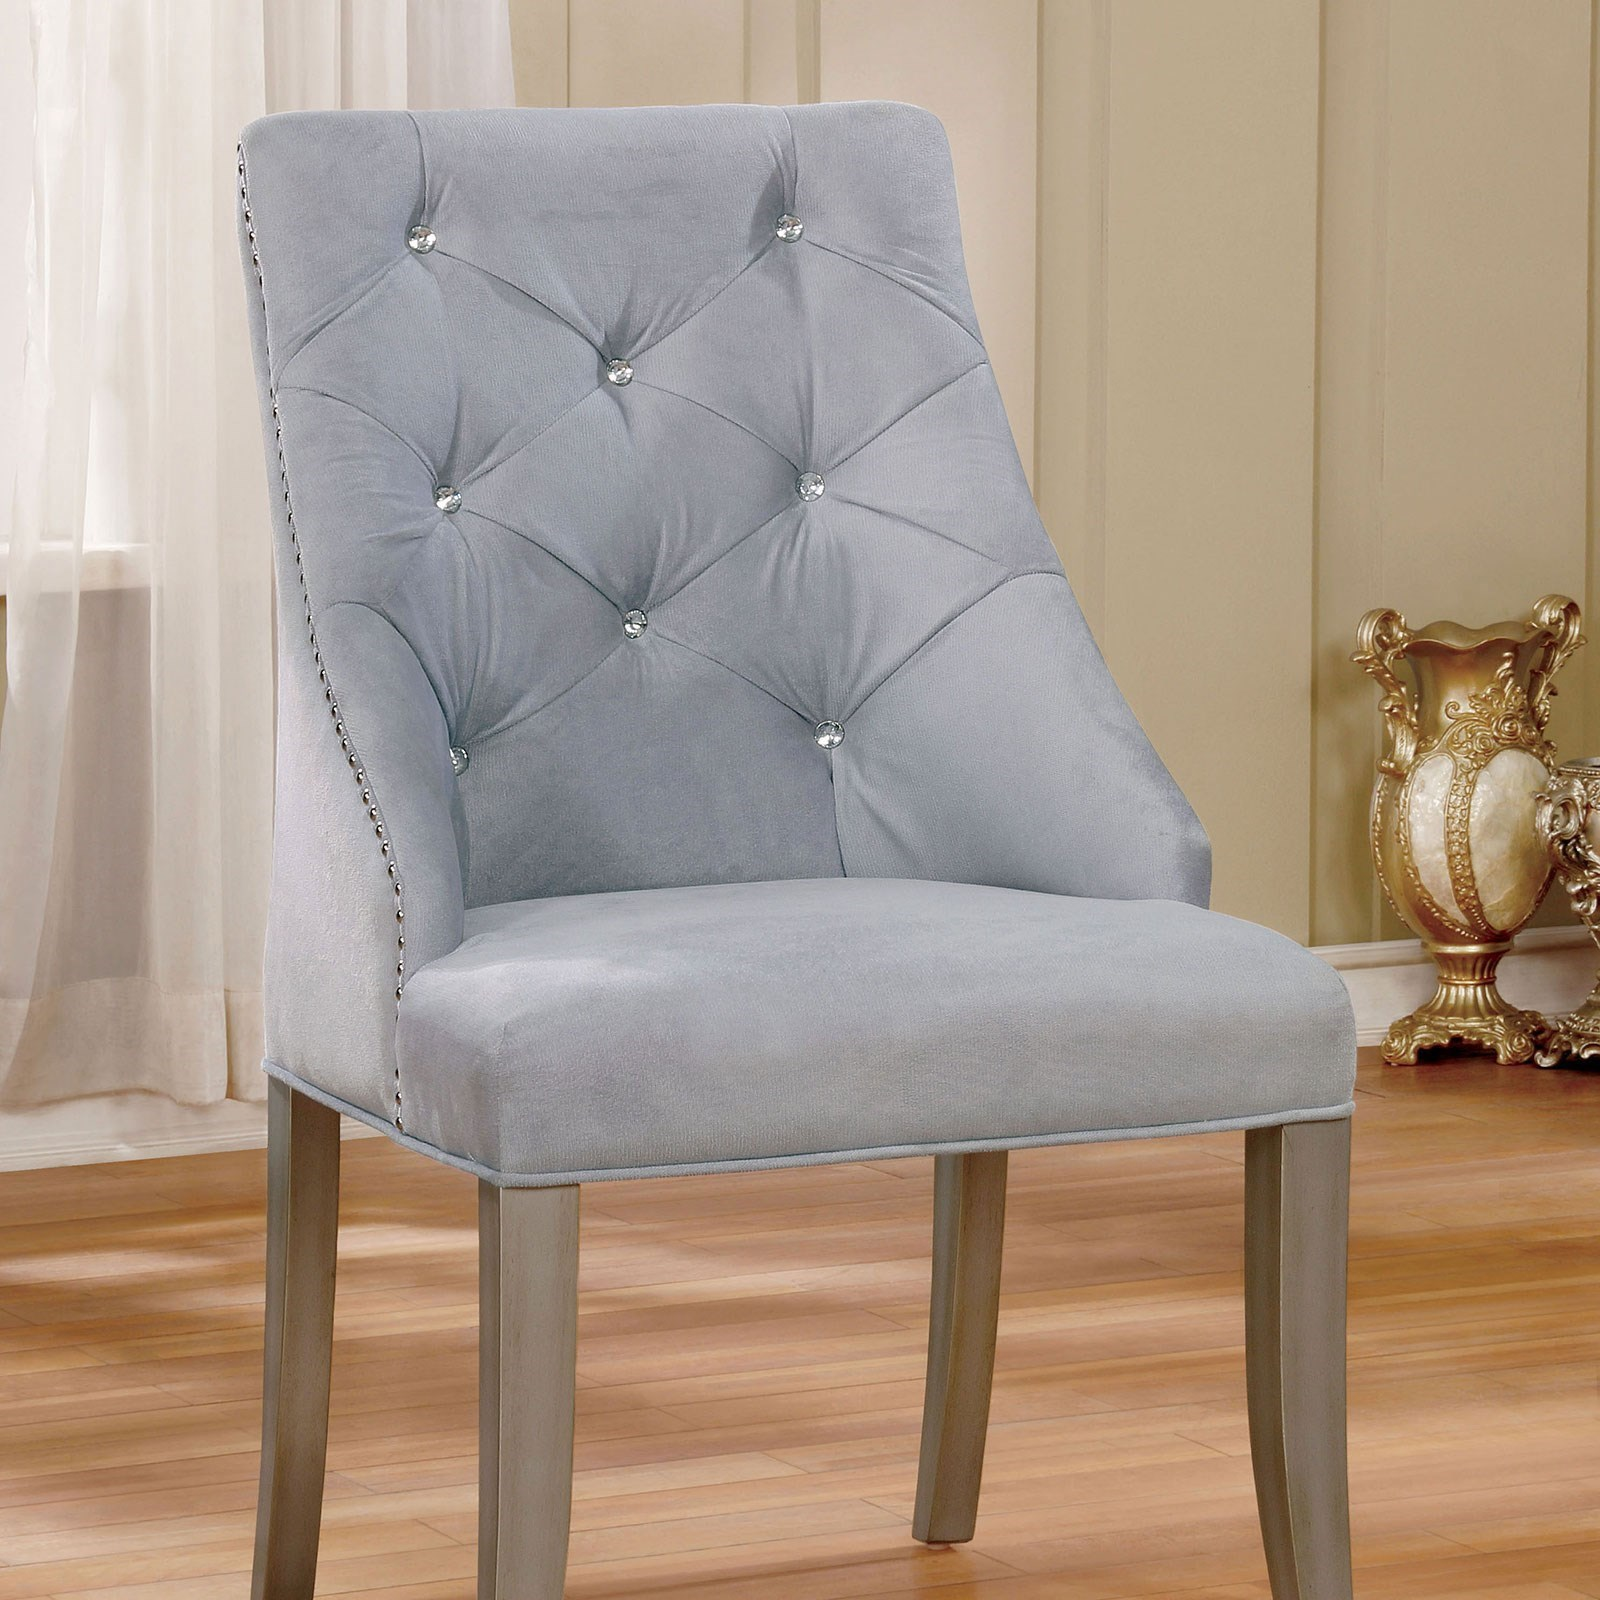 Silver Dining Chairs Diocles Set Of 2 Glam Silver Tufted Dining Chairs With Gray Flannel Upholstery And Acrylic Crystal Buttons By Furniture Of America At Rooms For Less